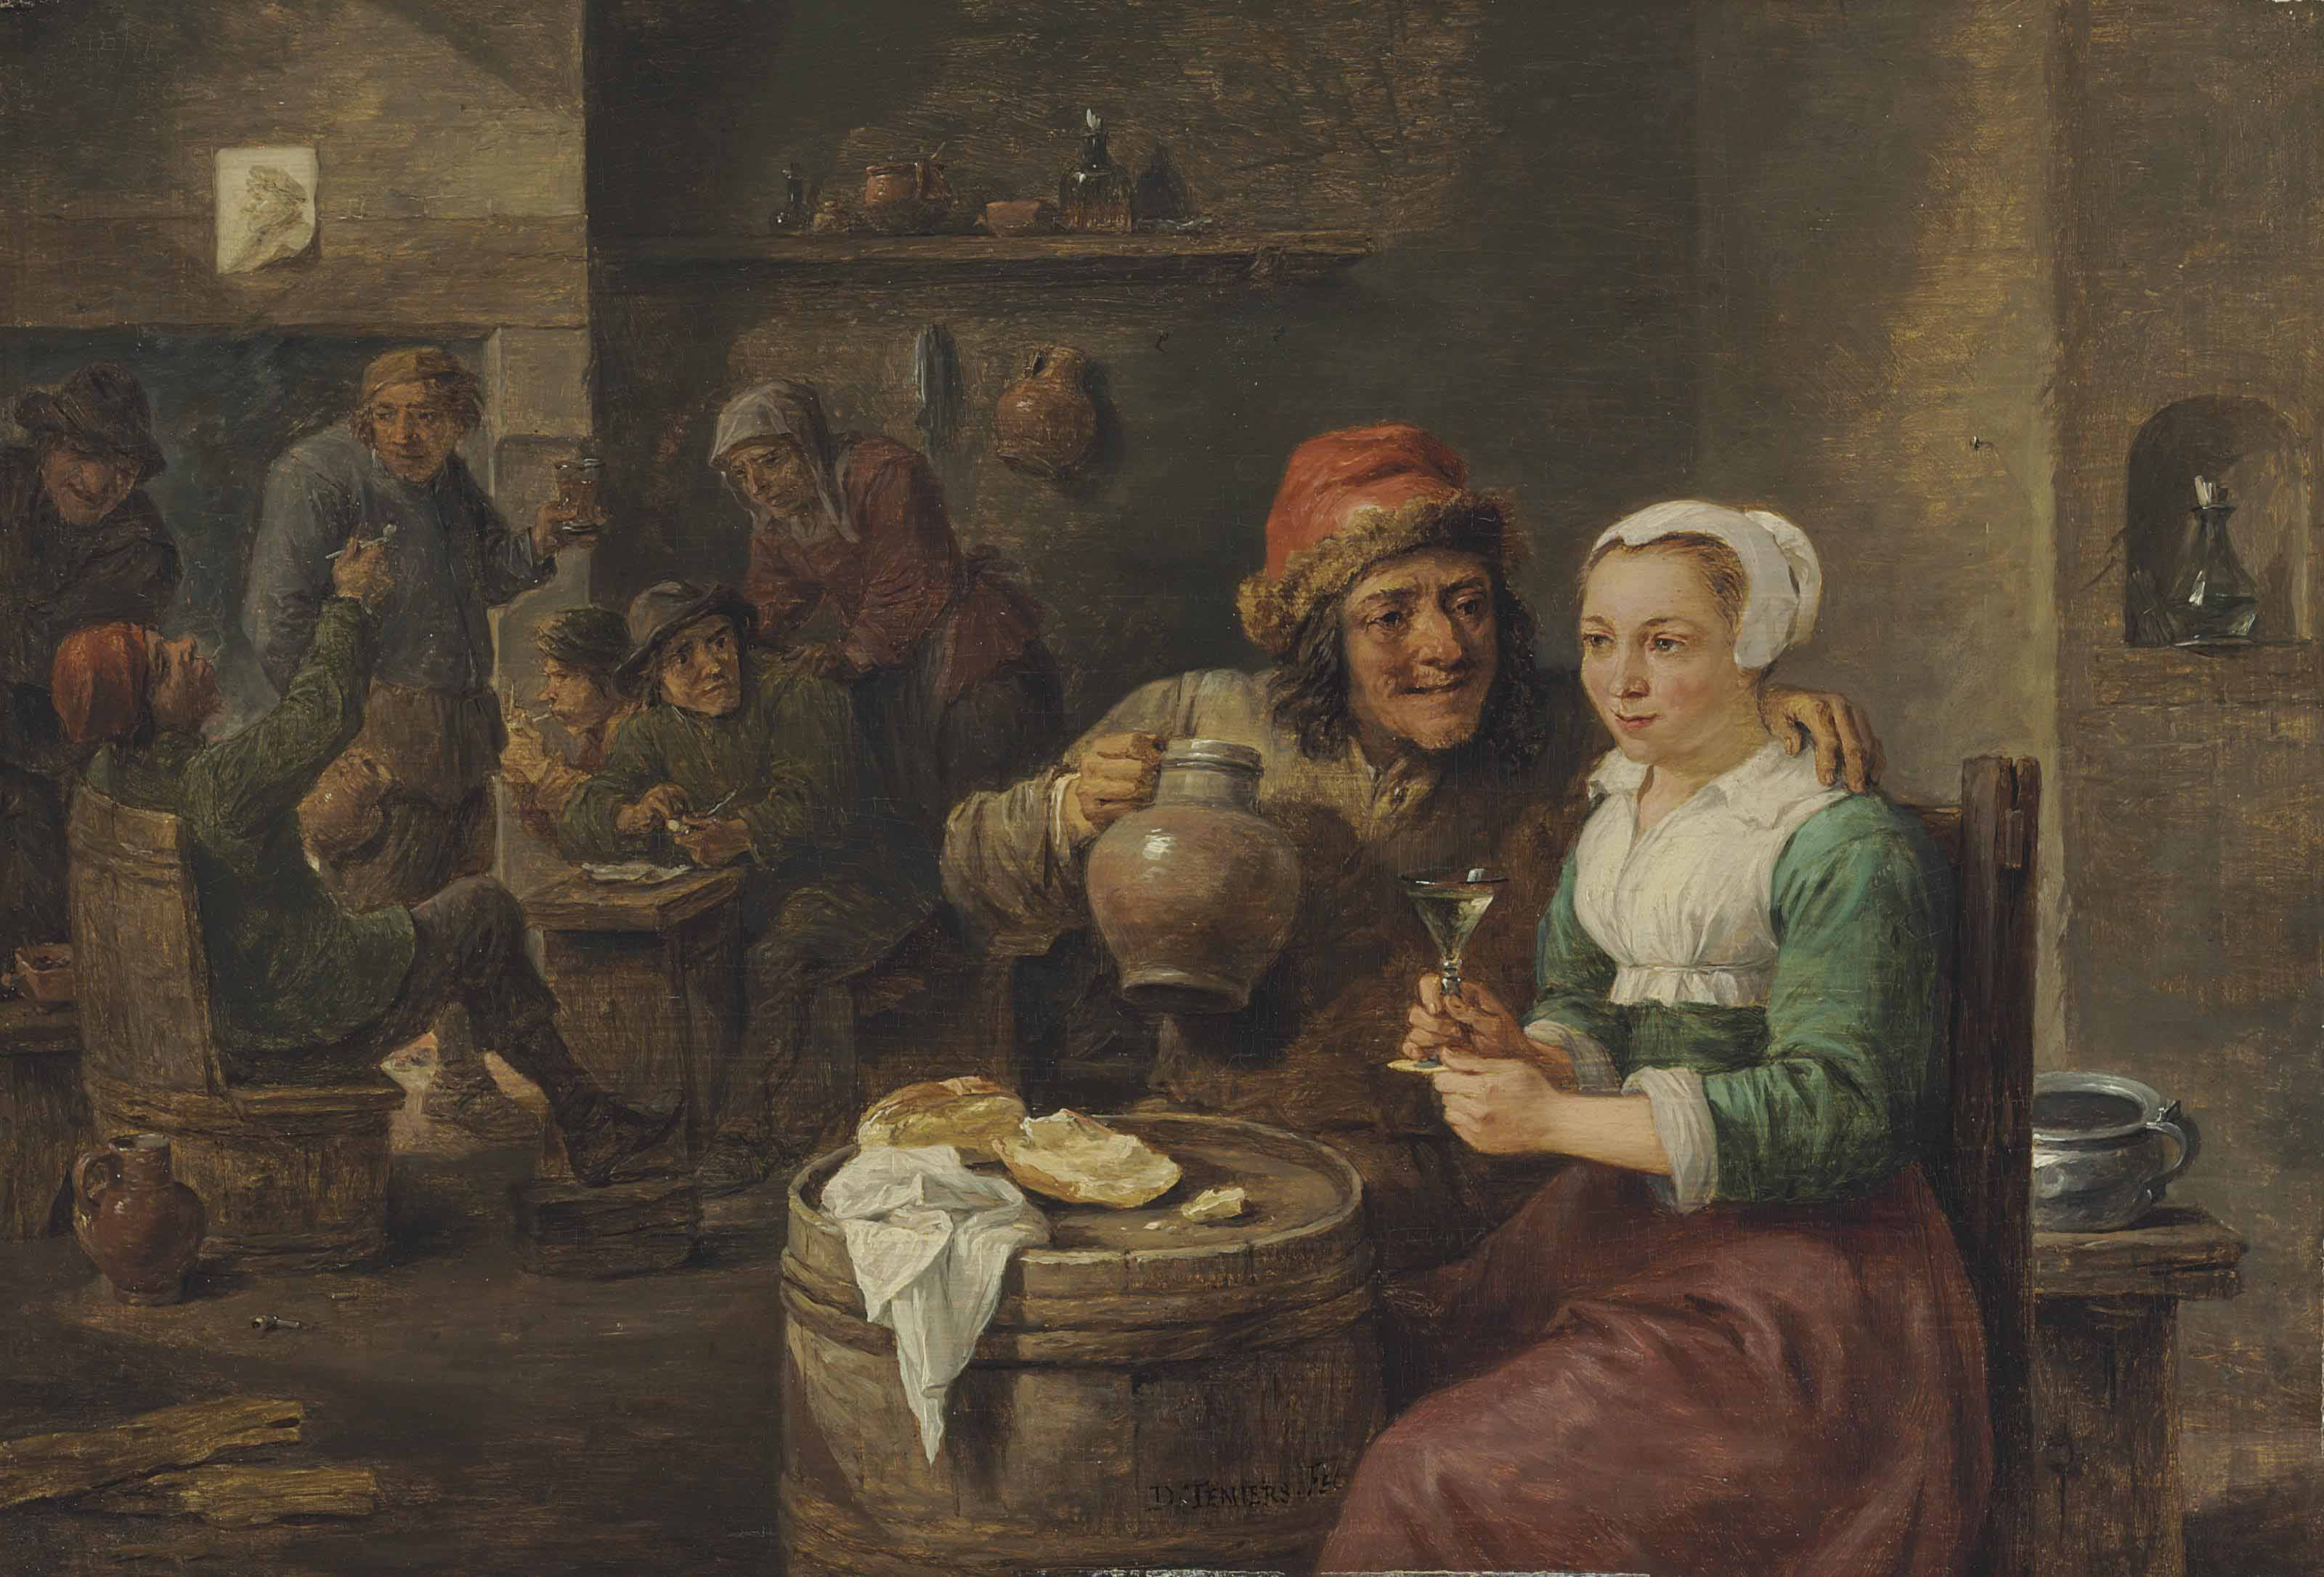 A boor and a young woman drinking in a tavern